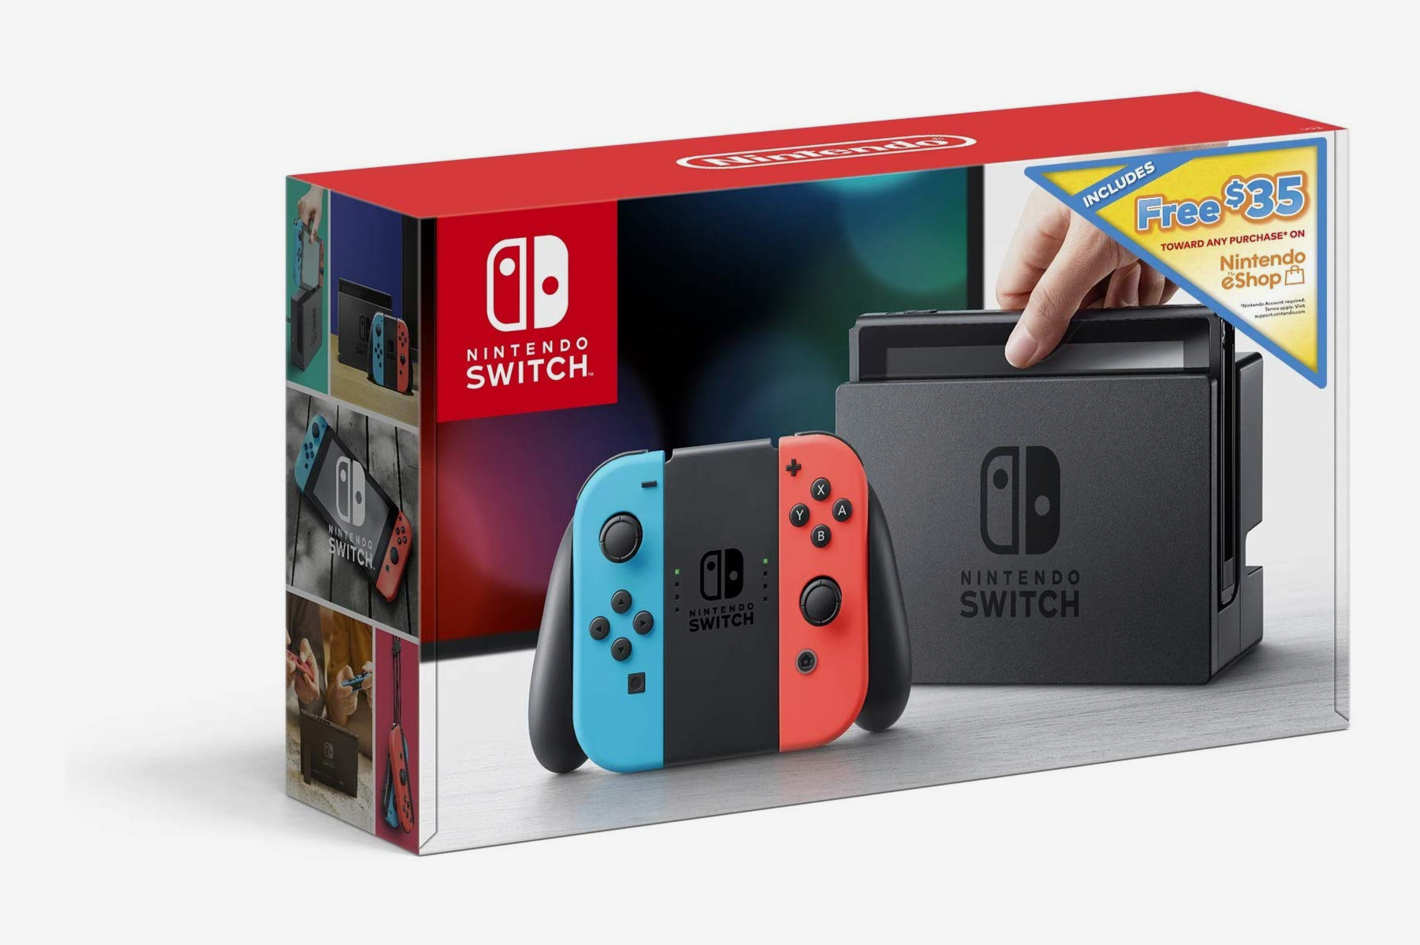 Nintendo Switch With Neon Blue & Neon Red Joy Con + $35 Nintendo eShop Credit Download Code